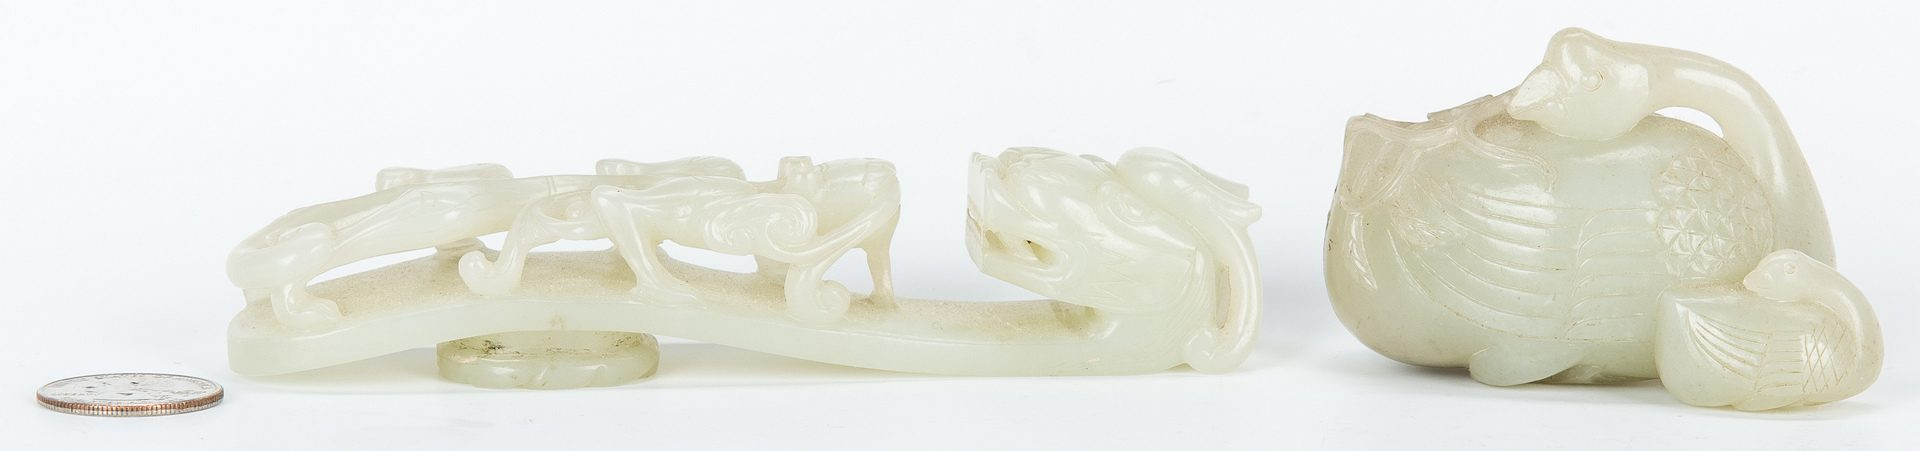 Lot 3: Carved Jade Ducks and Belt Hook